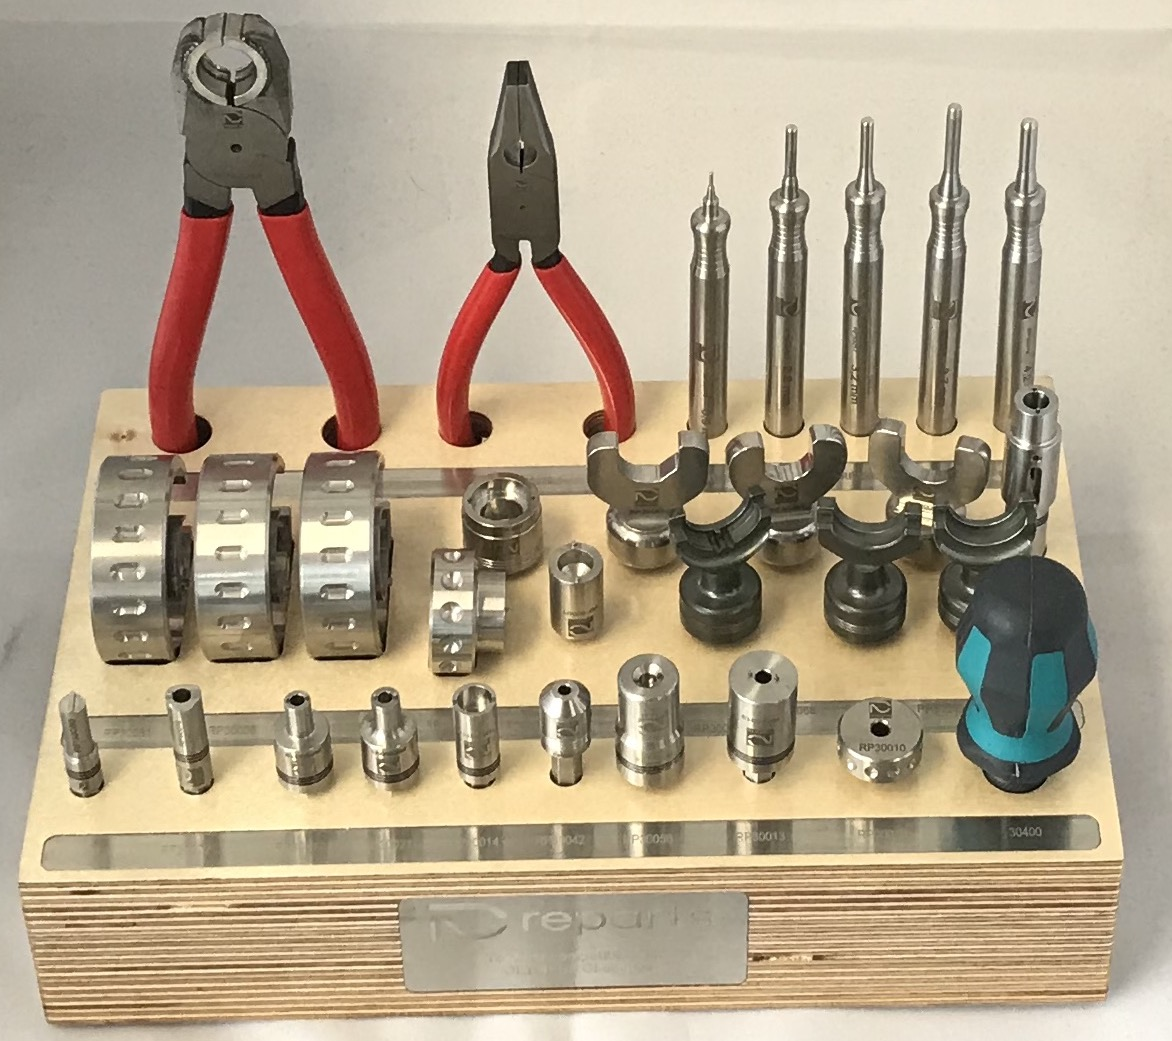 Tools designed & manufactured by Reparts